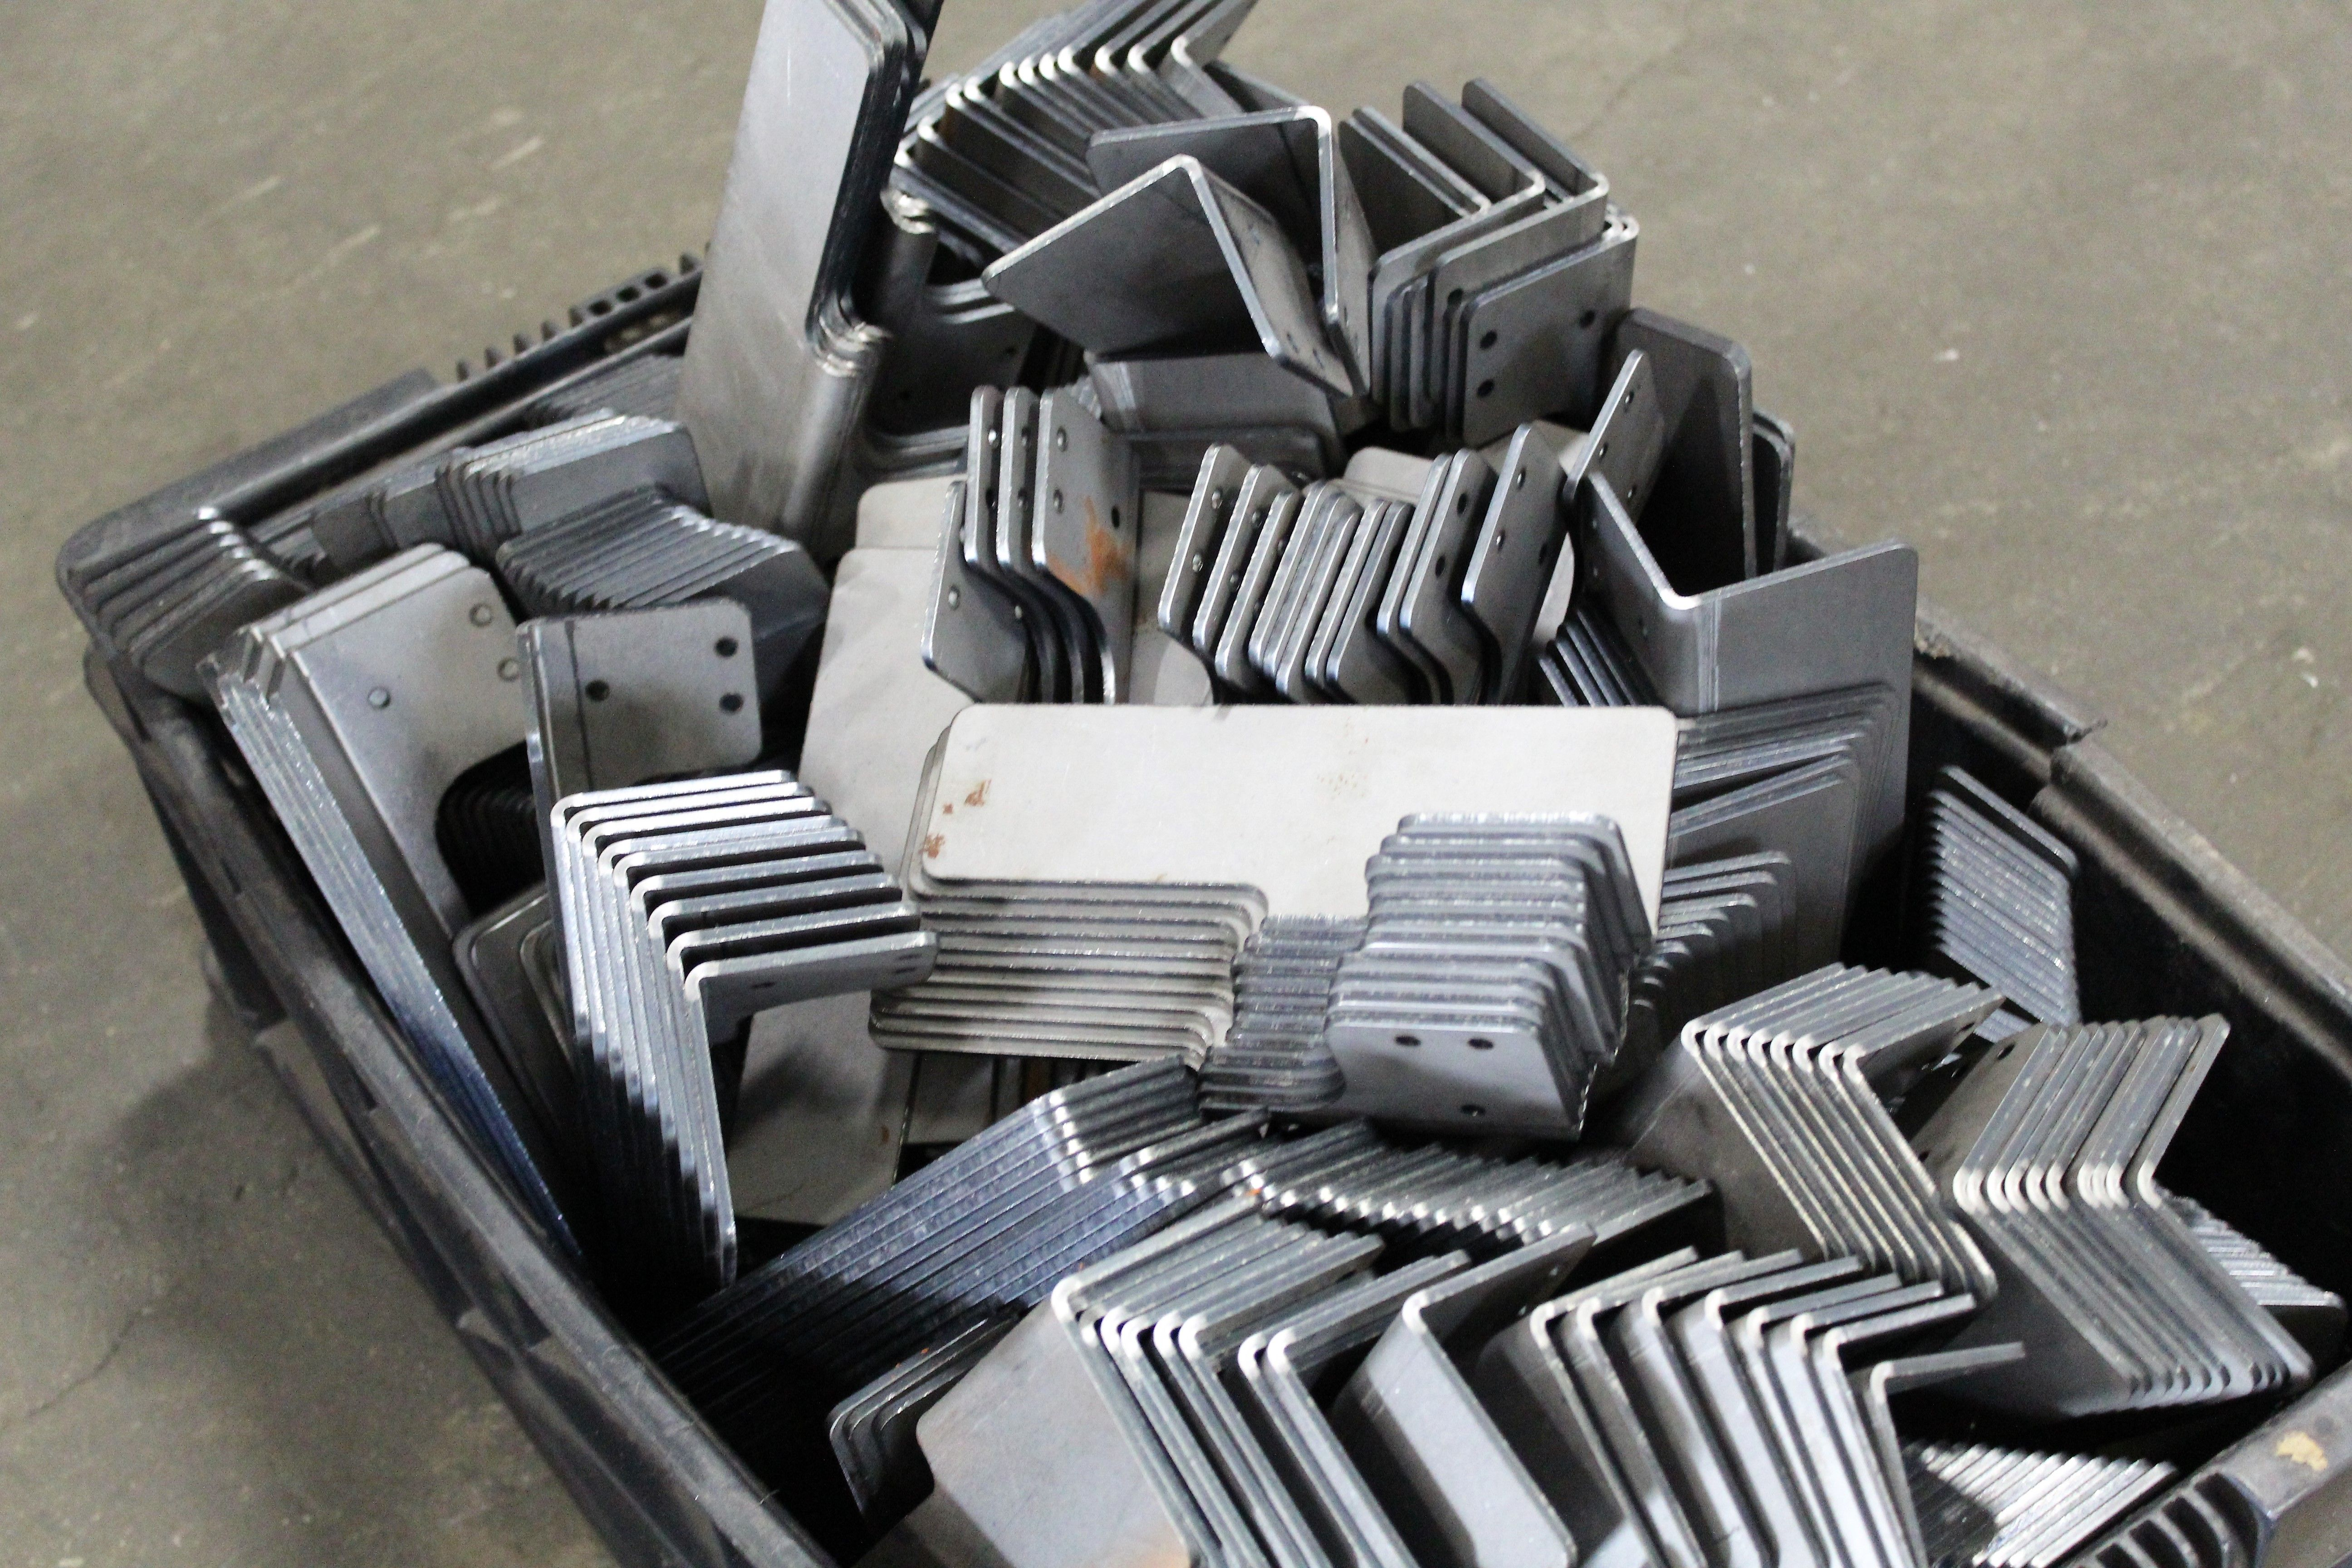 Rose A Lee Technologies Engineering Prototyping And Manufacturing Services Specializing In Metal Desig Sheet Metal Fabrication Metal Fabrication Metal